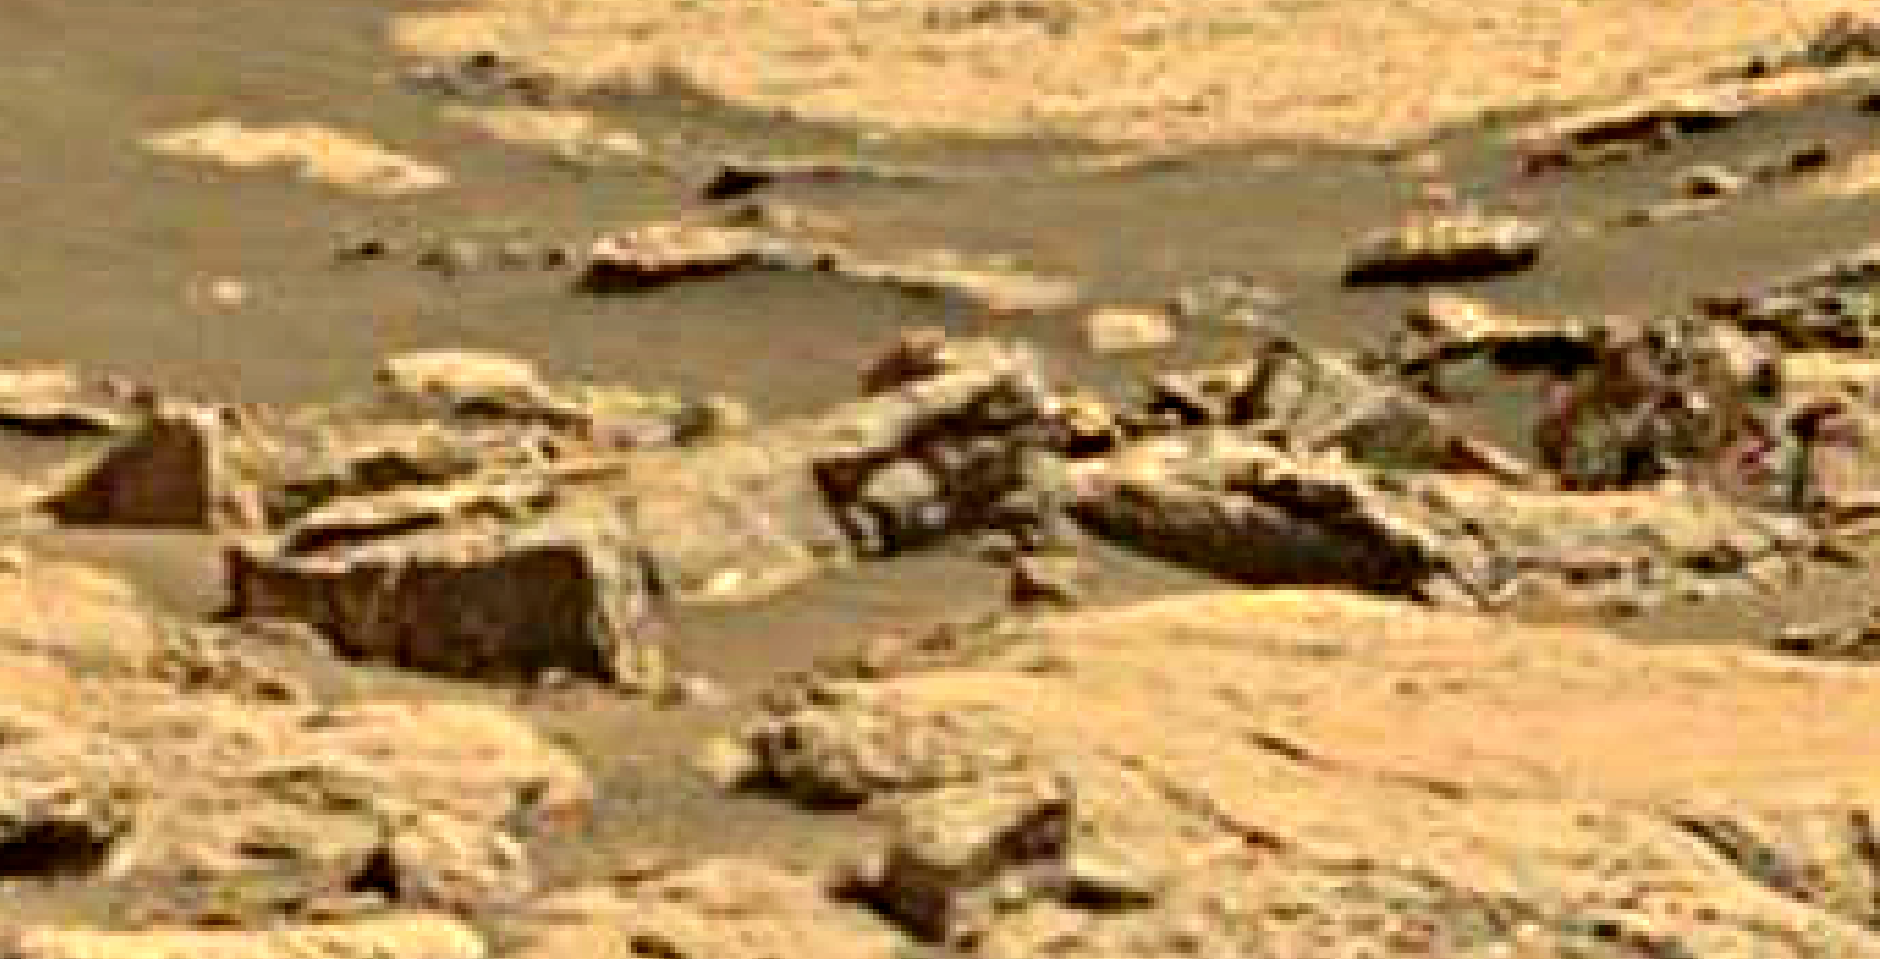 mars sol 1433 anomaly artifacts 3 was life on mars